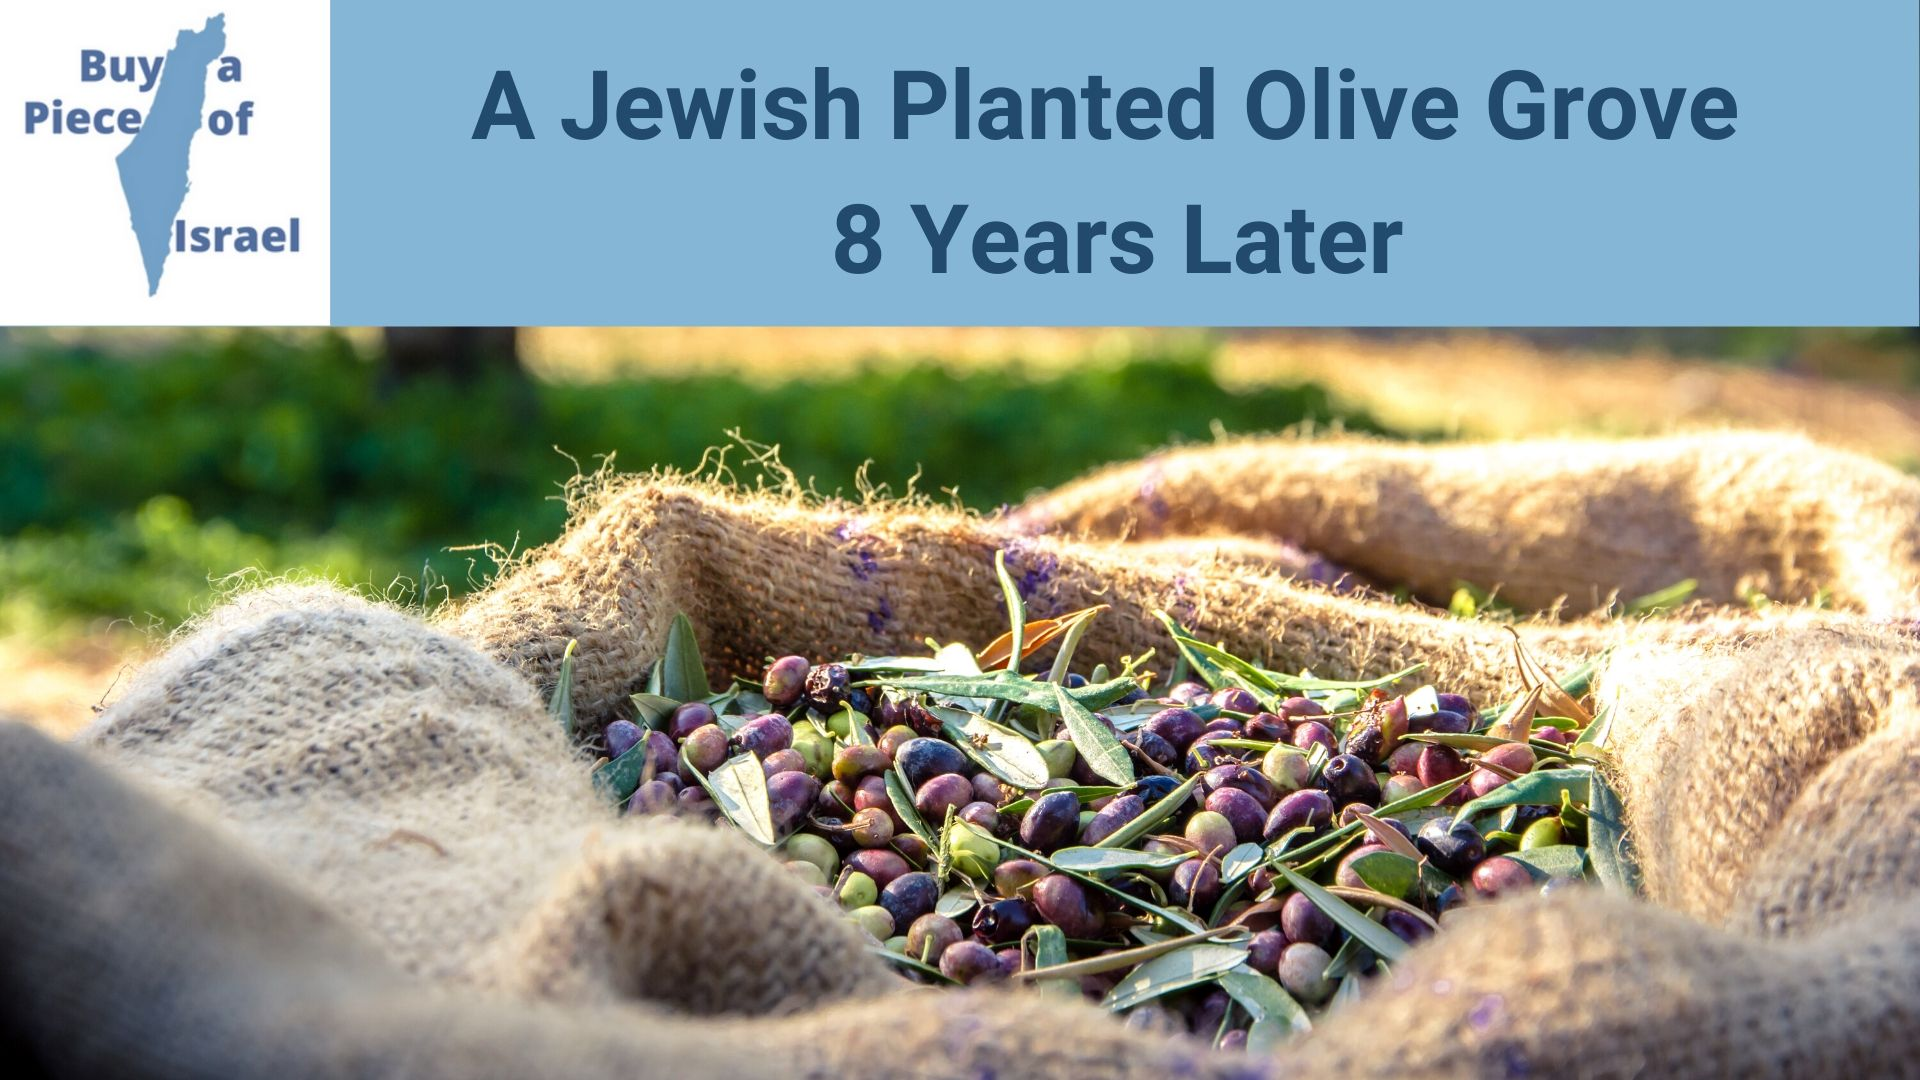 Olive growth